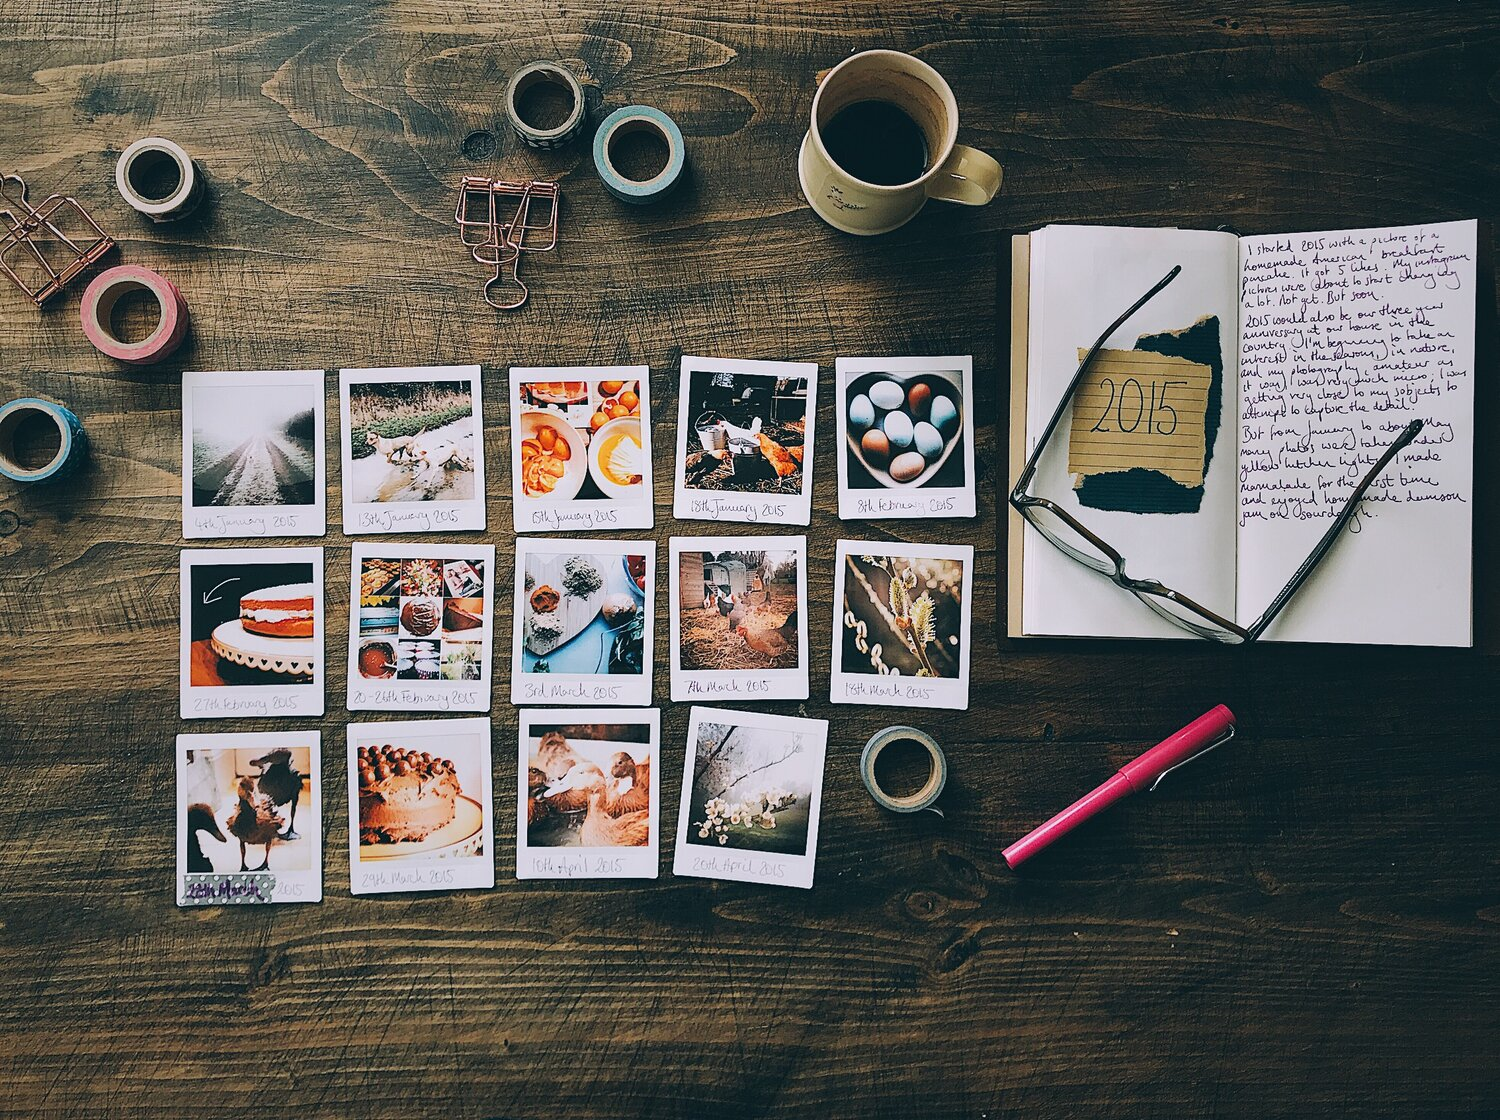 How I'm creating a journal of my Instagram photographs